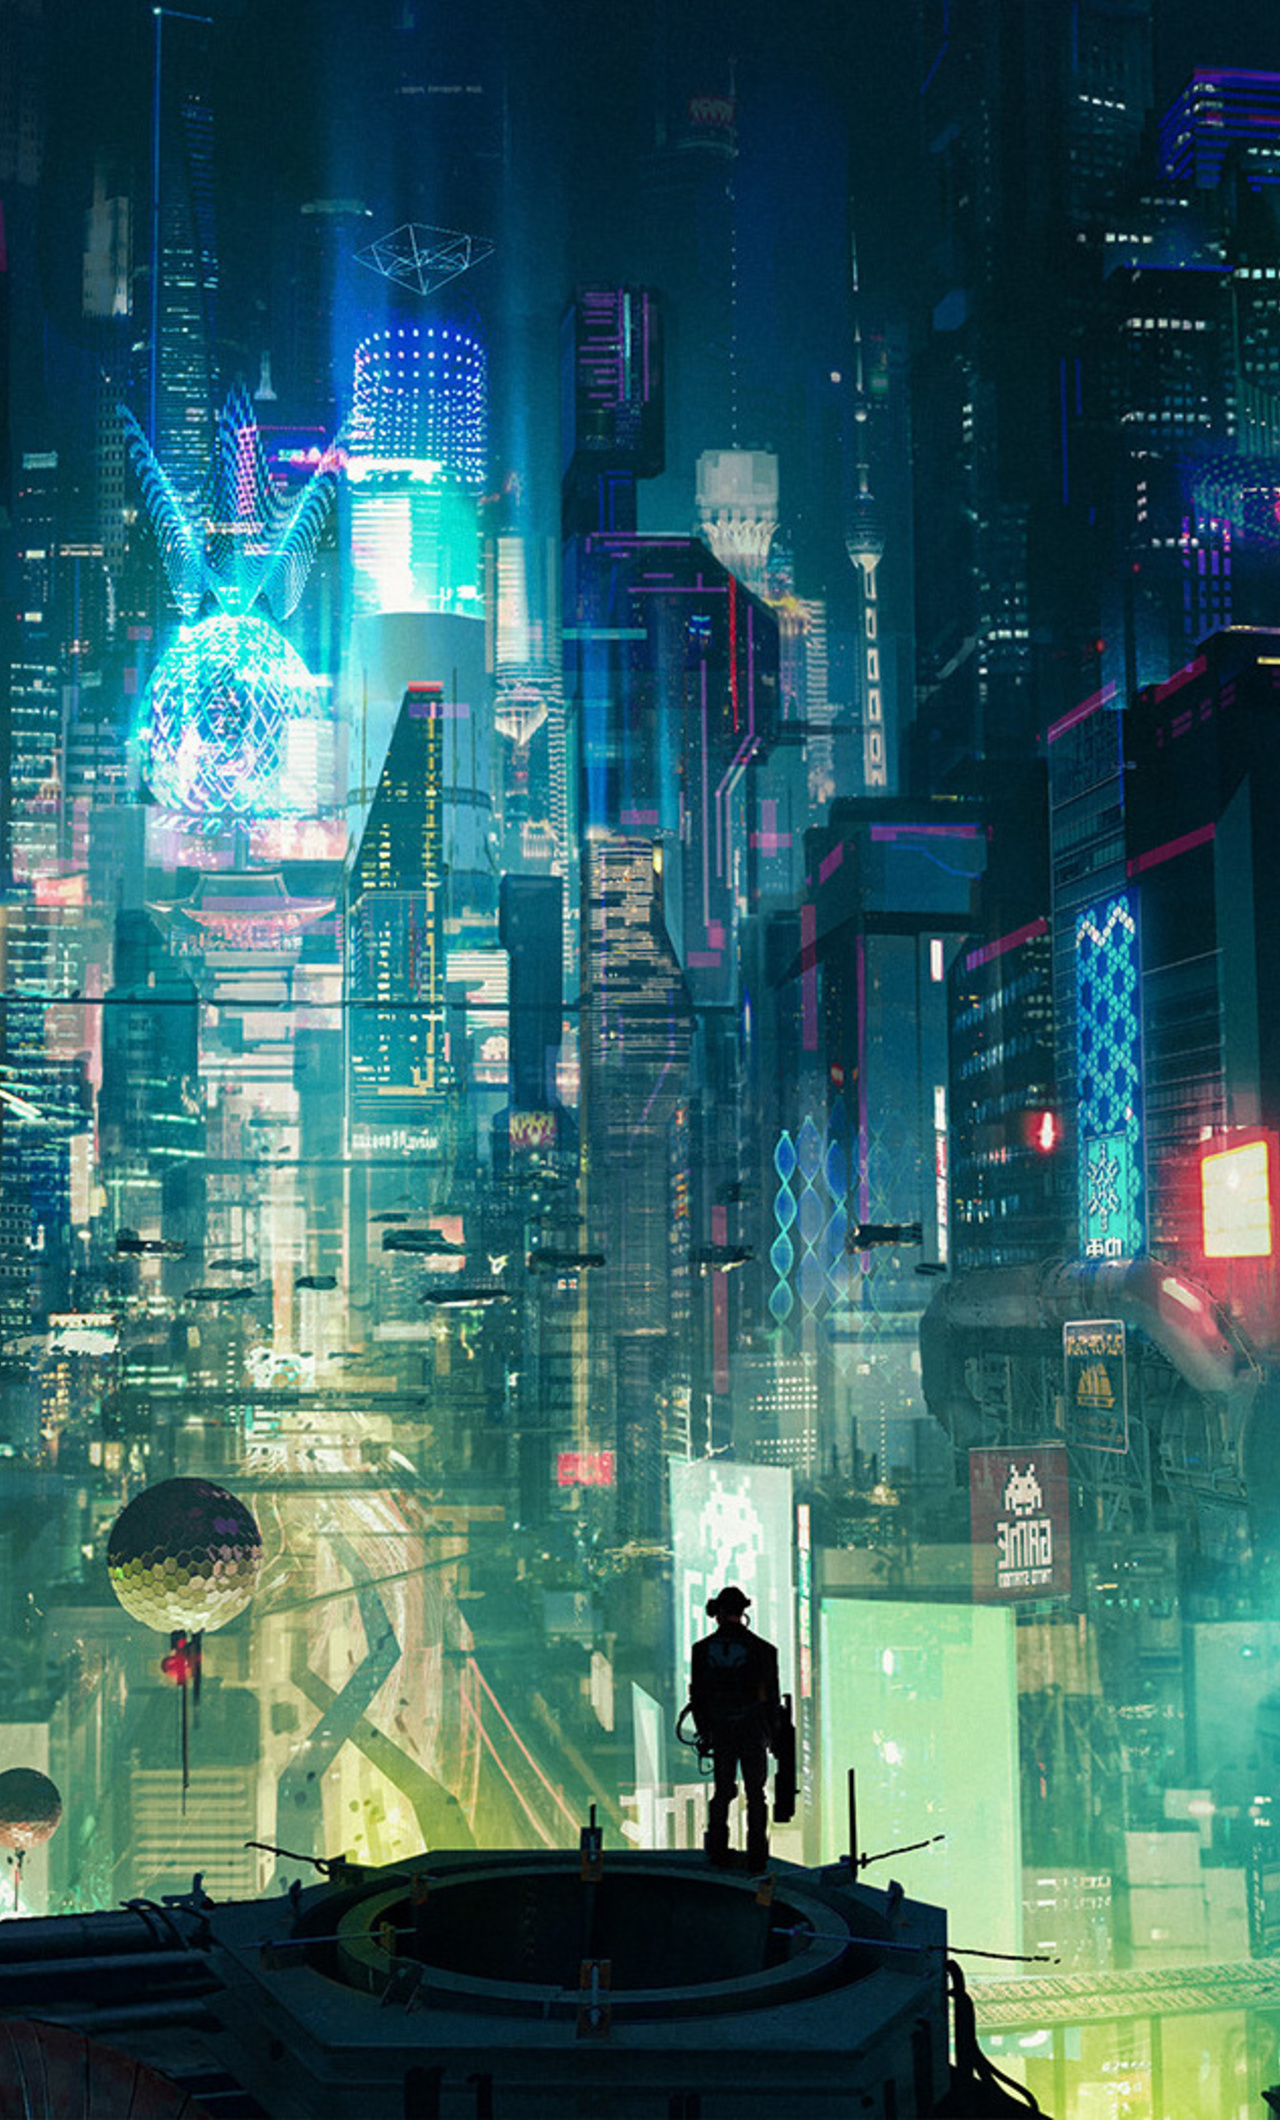 1280x2120 Cyberpunk City Iphone 6 Hd 4k Wallpapers